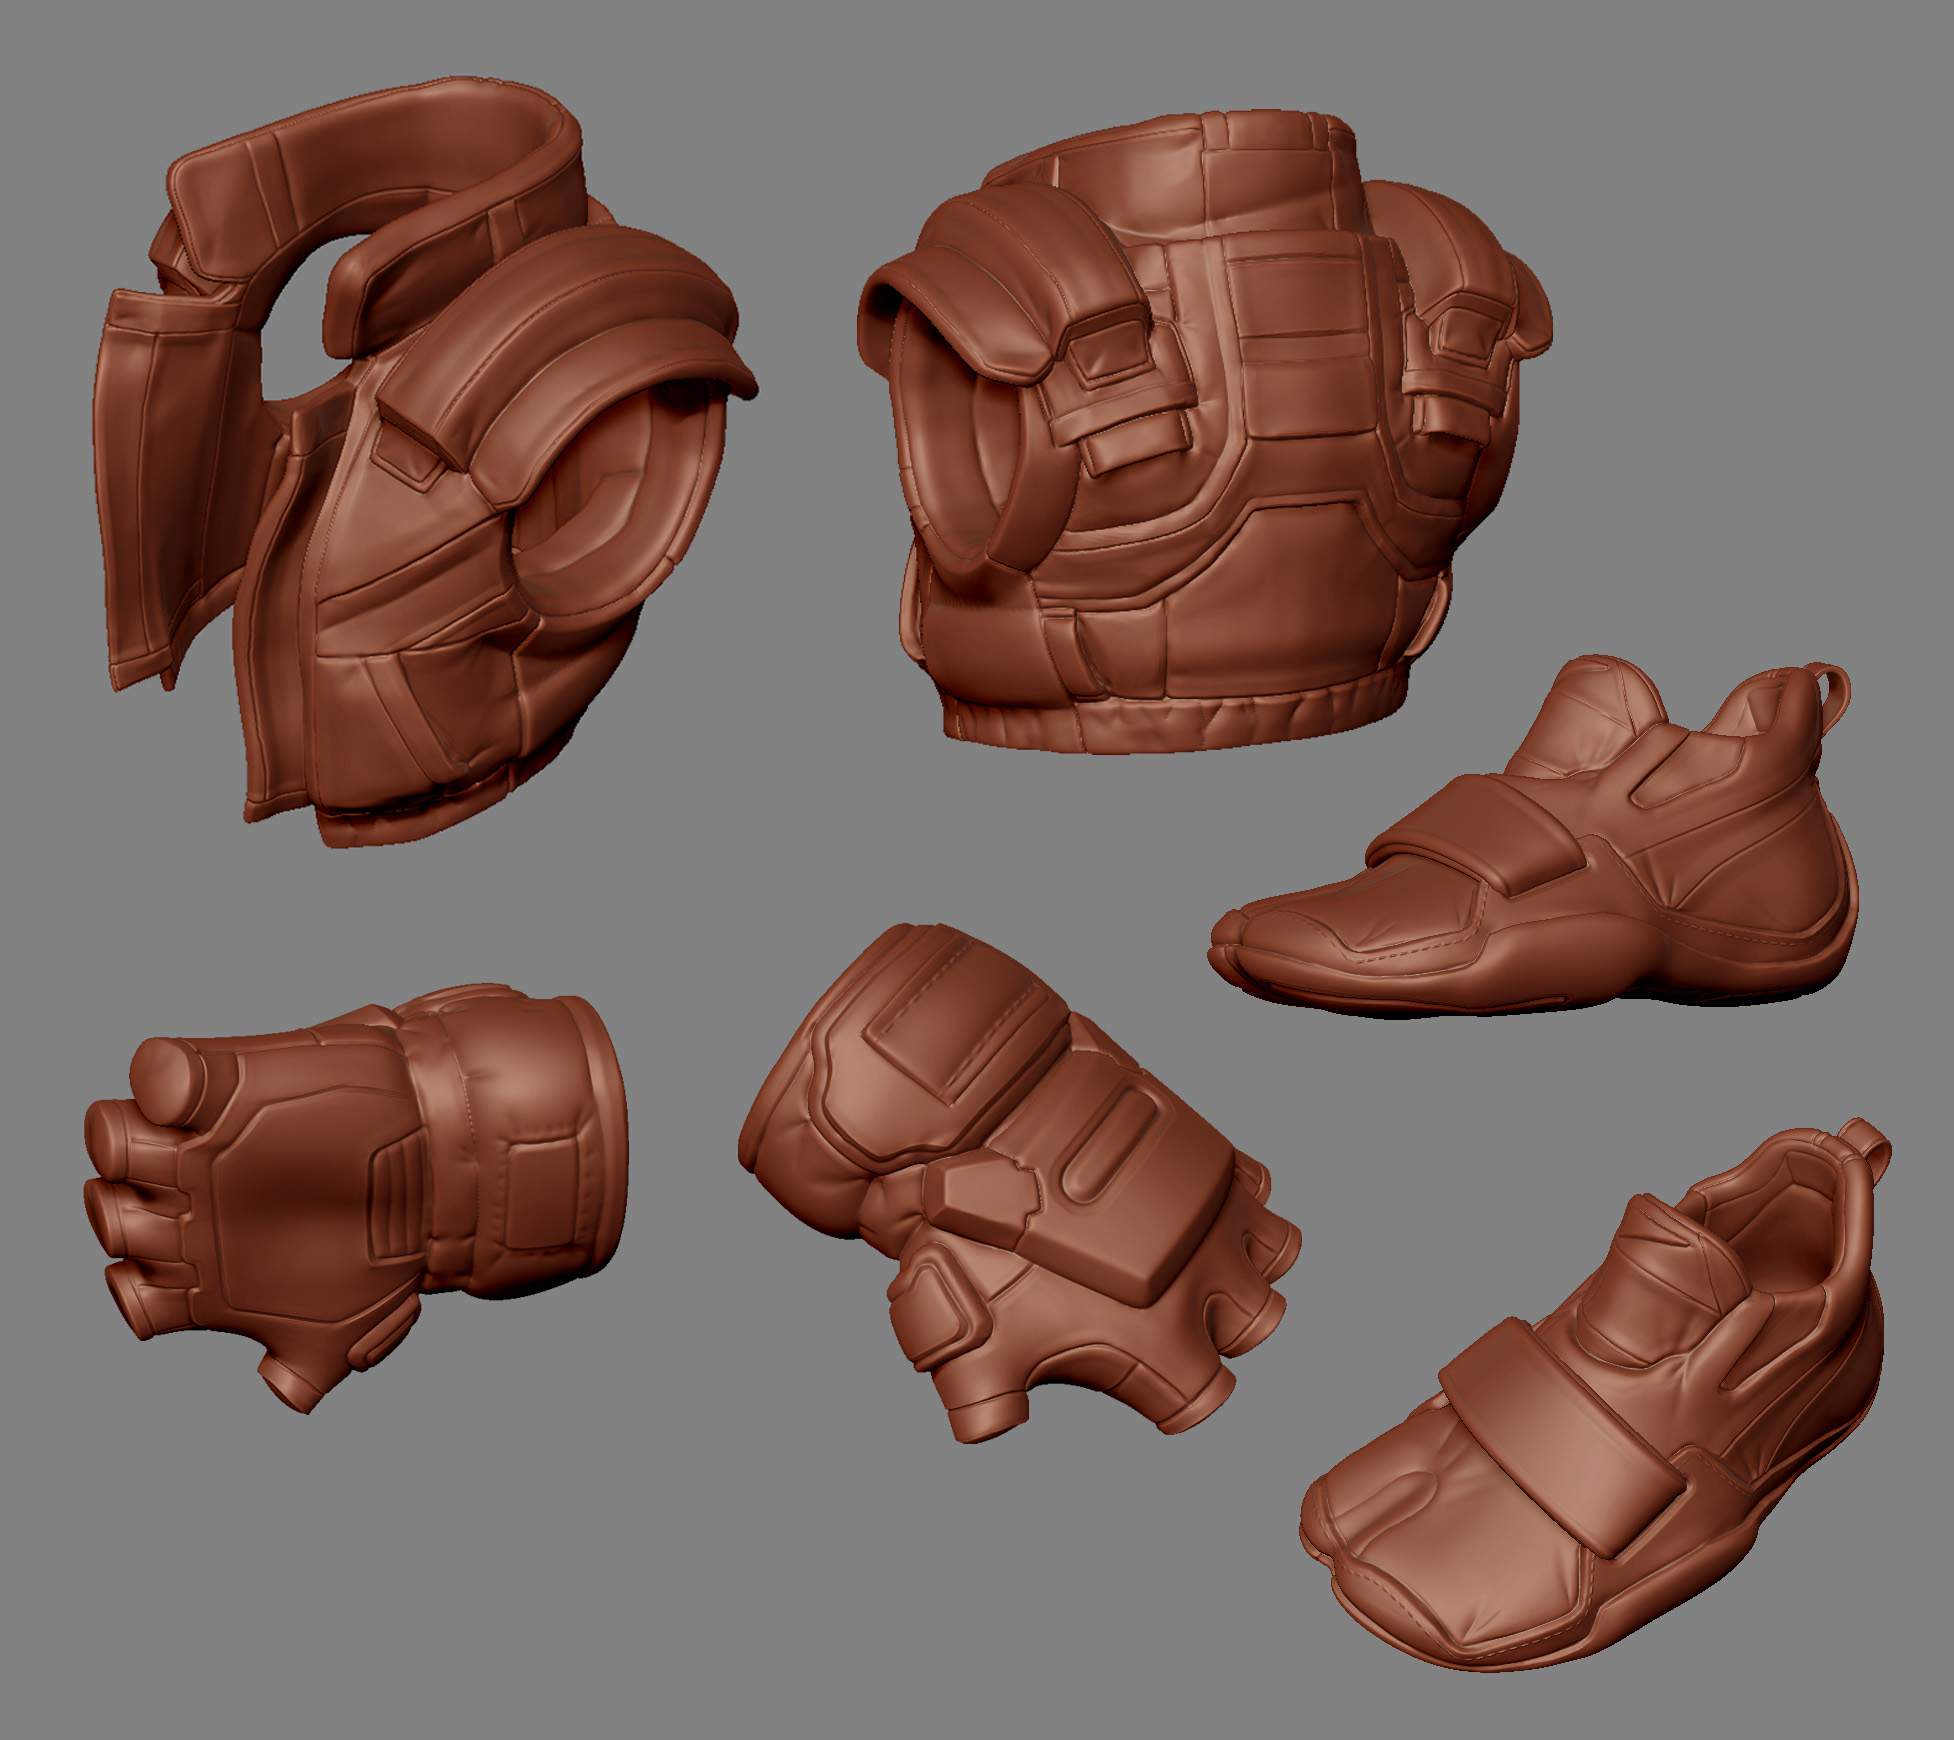 gear sculpt 2